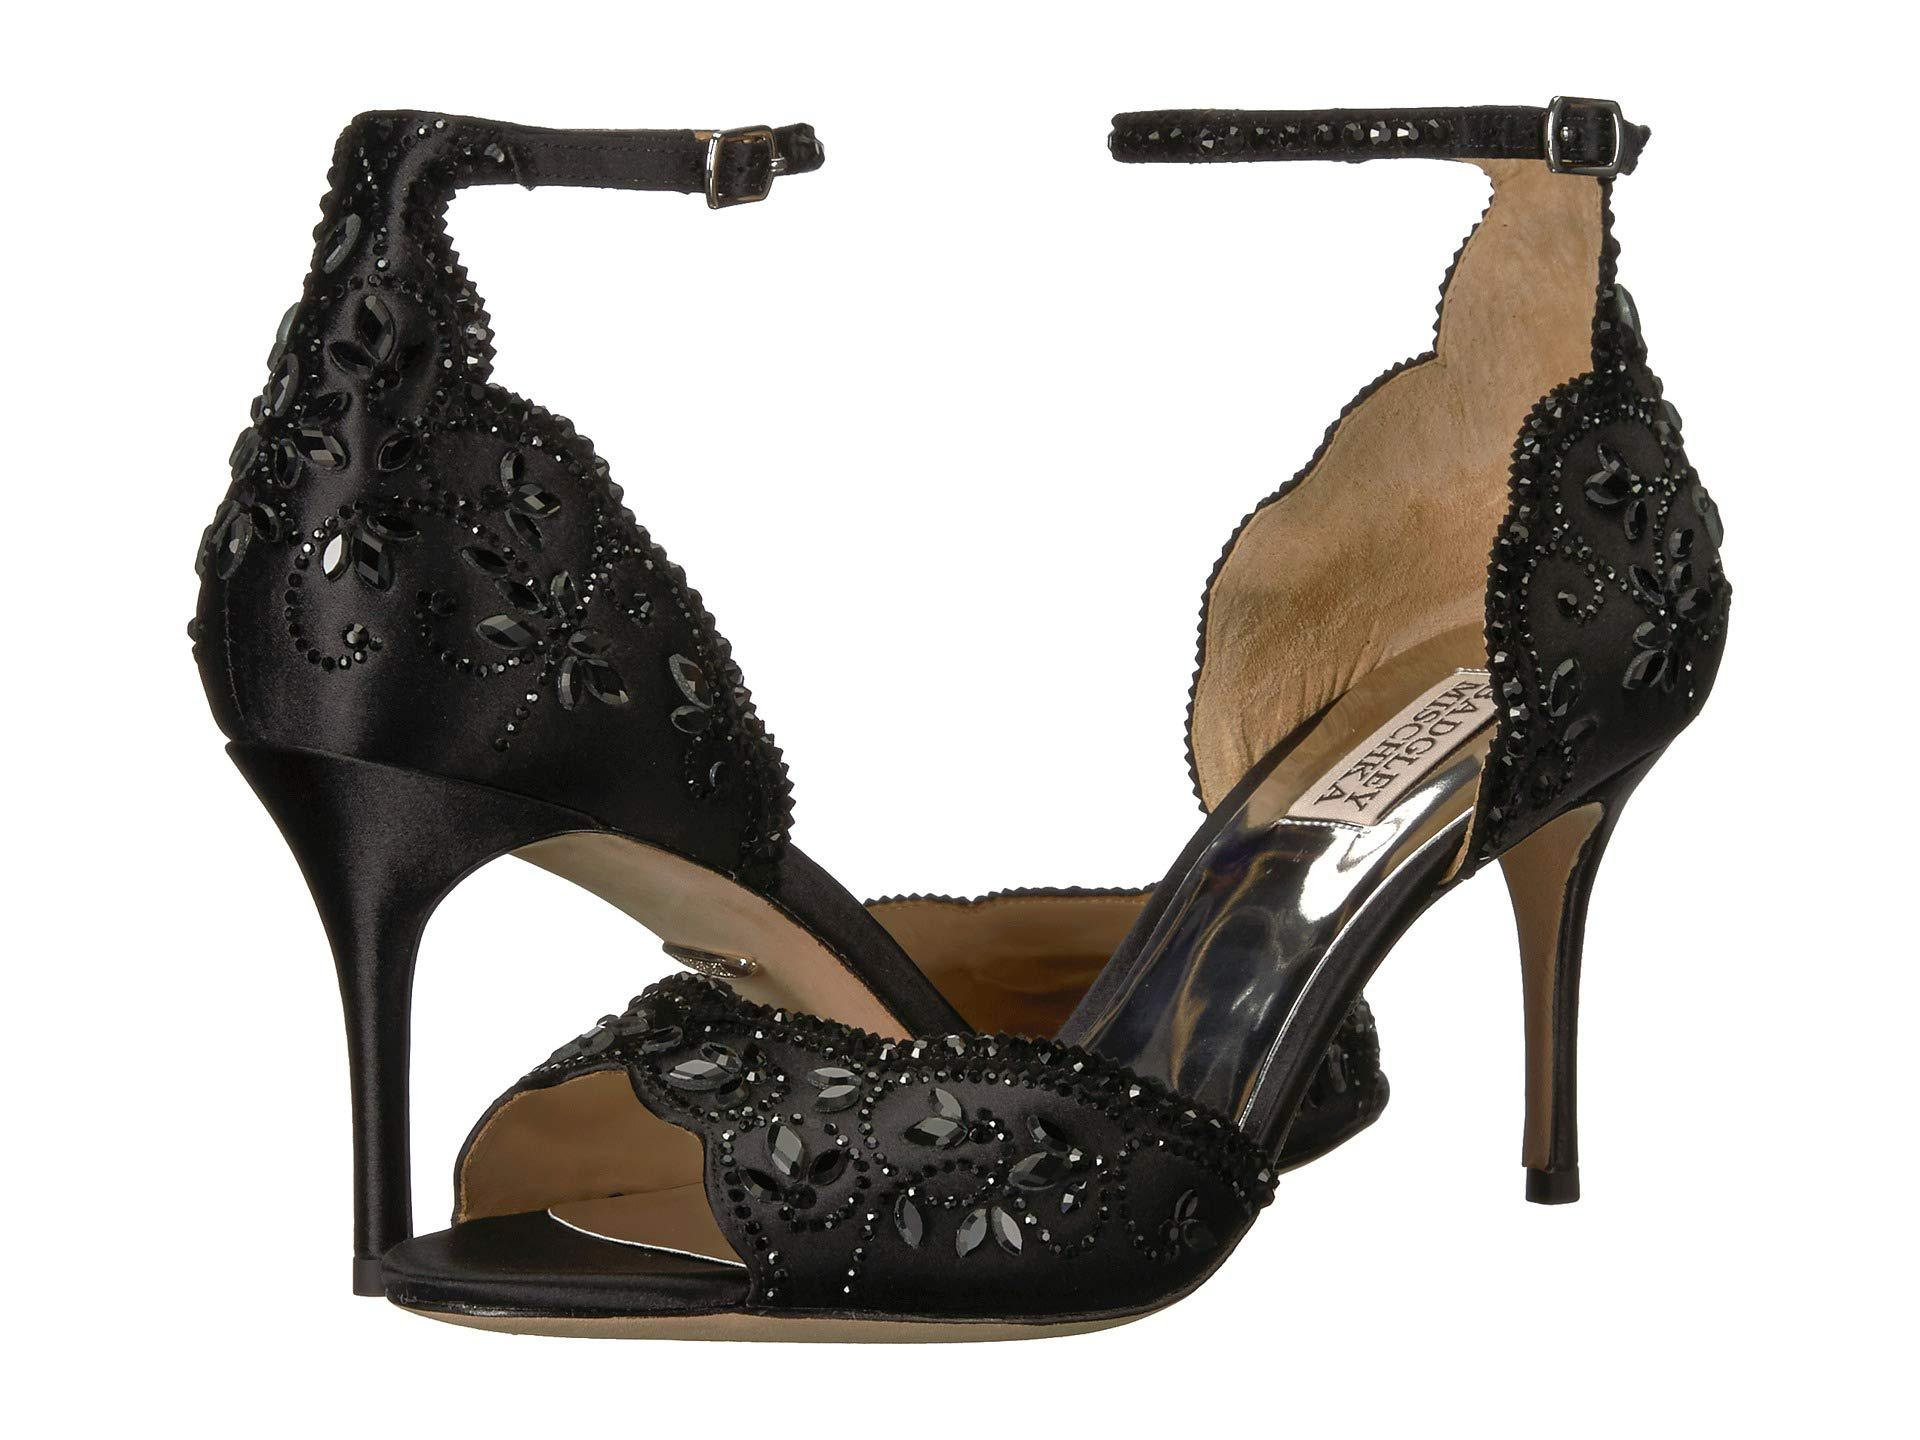 a901fa097e0 Lyst - Badgley Mischka Veta (black Satin) High Heels in Black